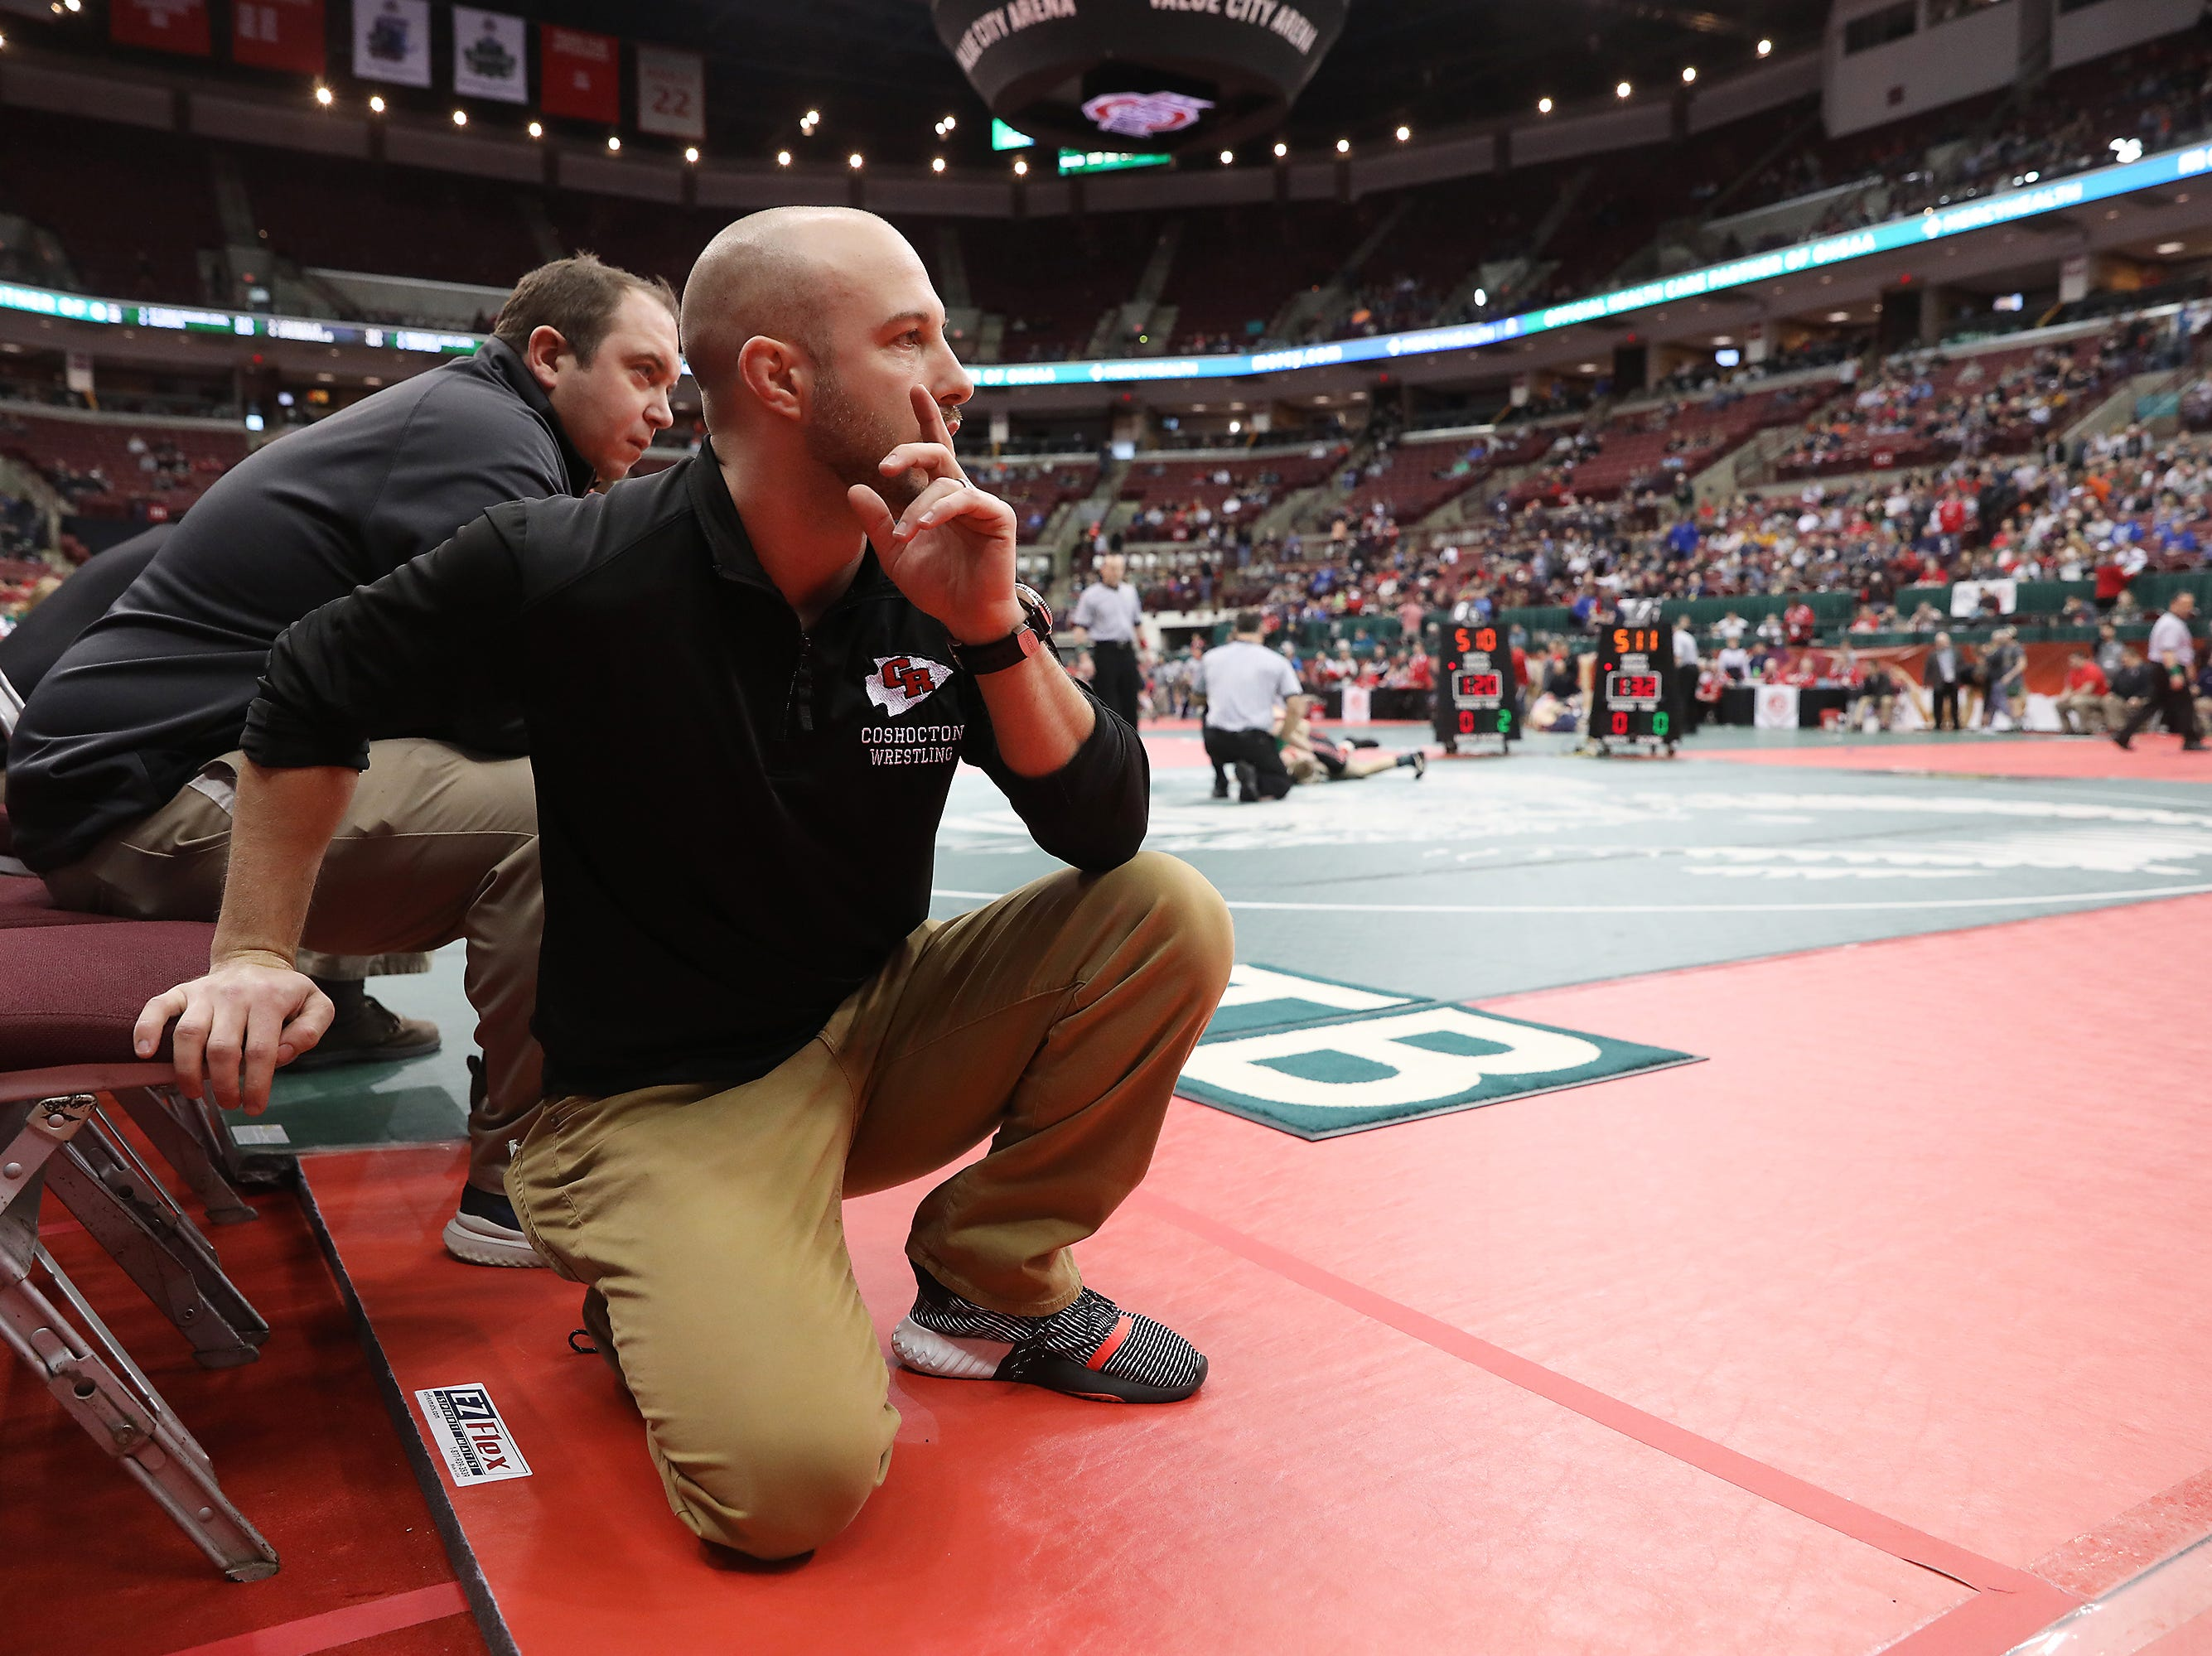 The Coshocton coaching staff encourages Austin Guthrie during his match against Milan Edison's Ray Adams.